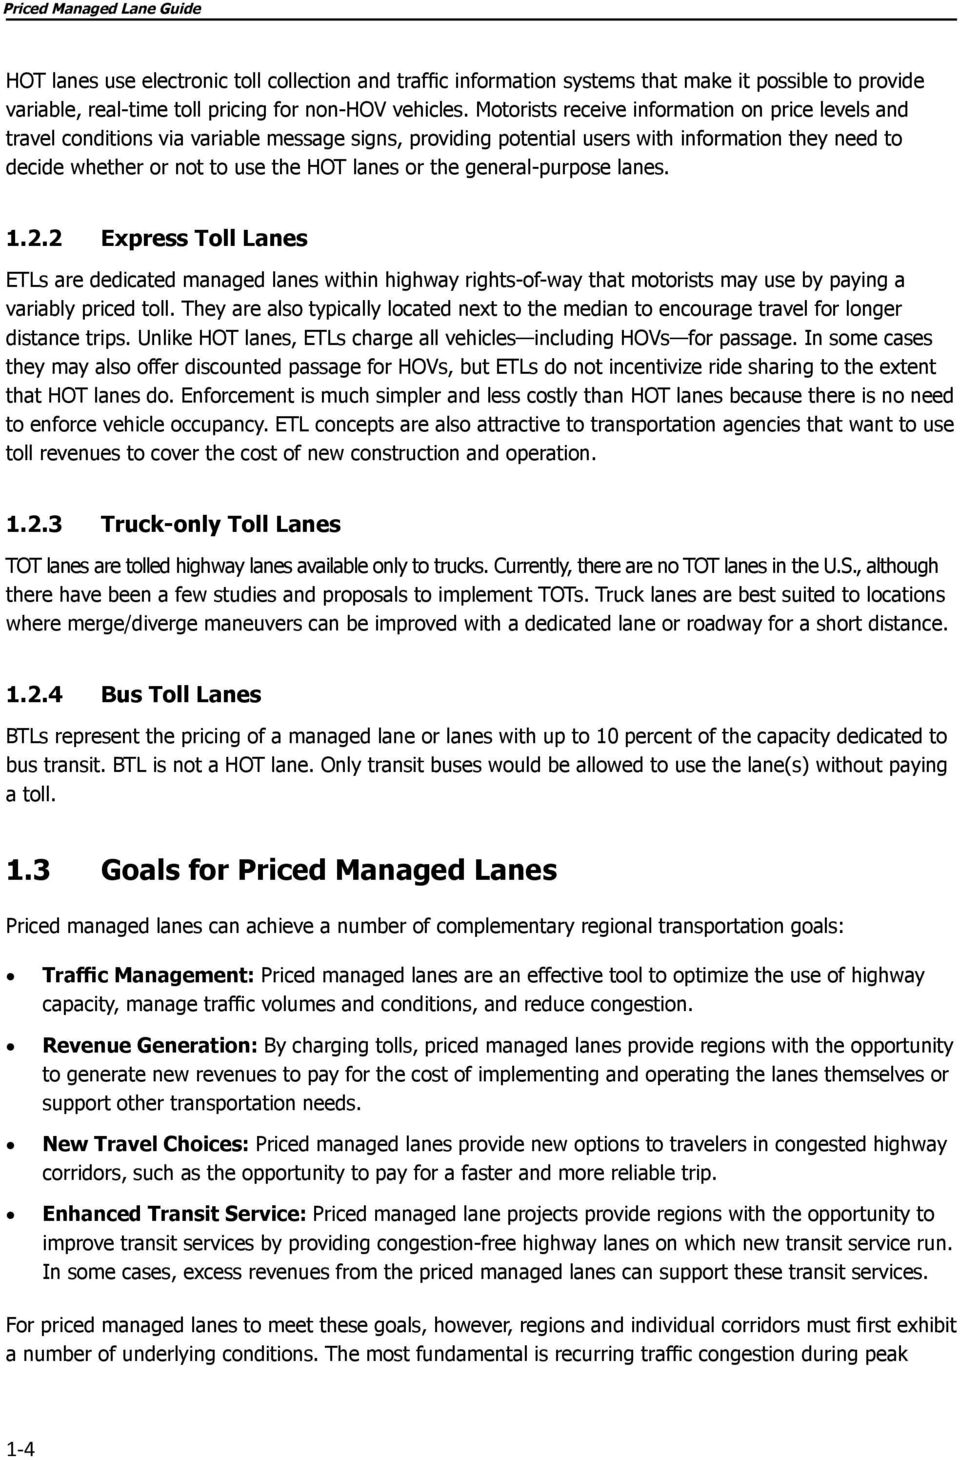 the general-purpose lanes. 1.2.2 Express Toll Lanes ETLs are dedicated managed lanes within highway rights-of-way that motorists may use by paying a variably priced toll.